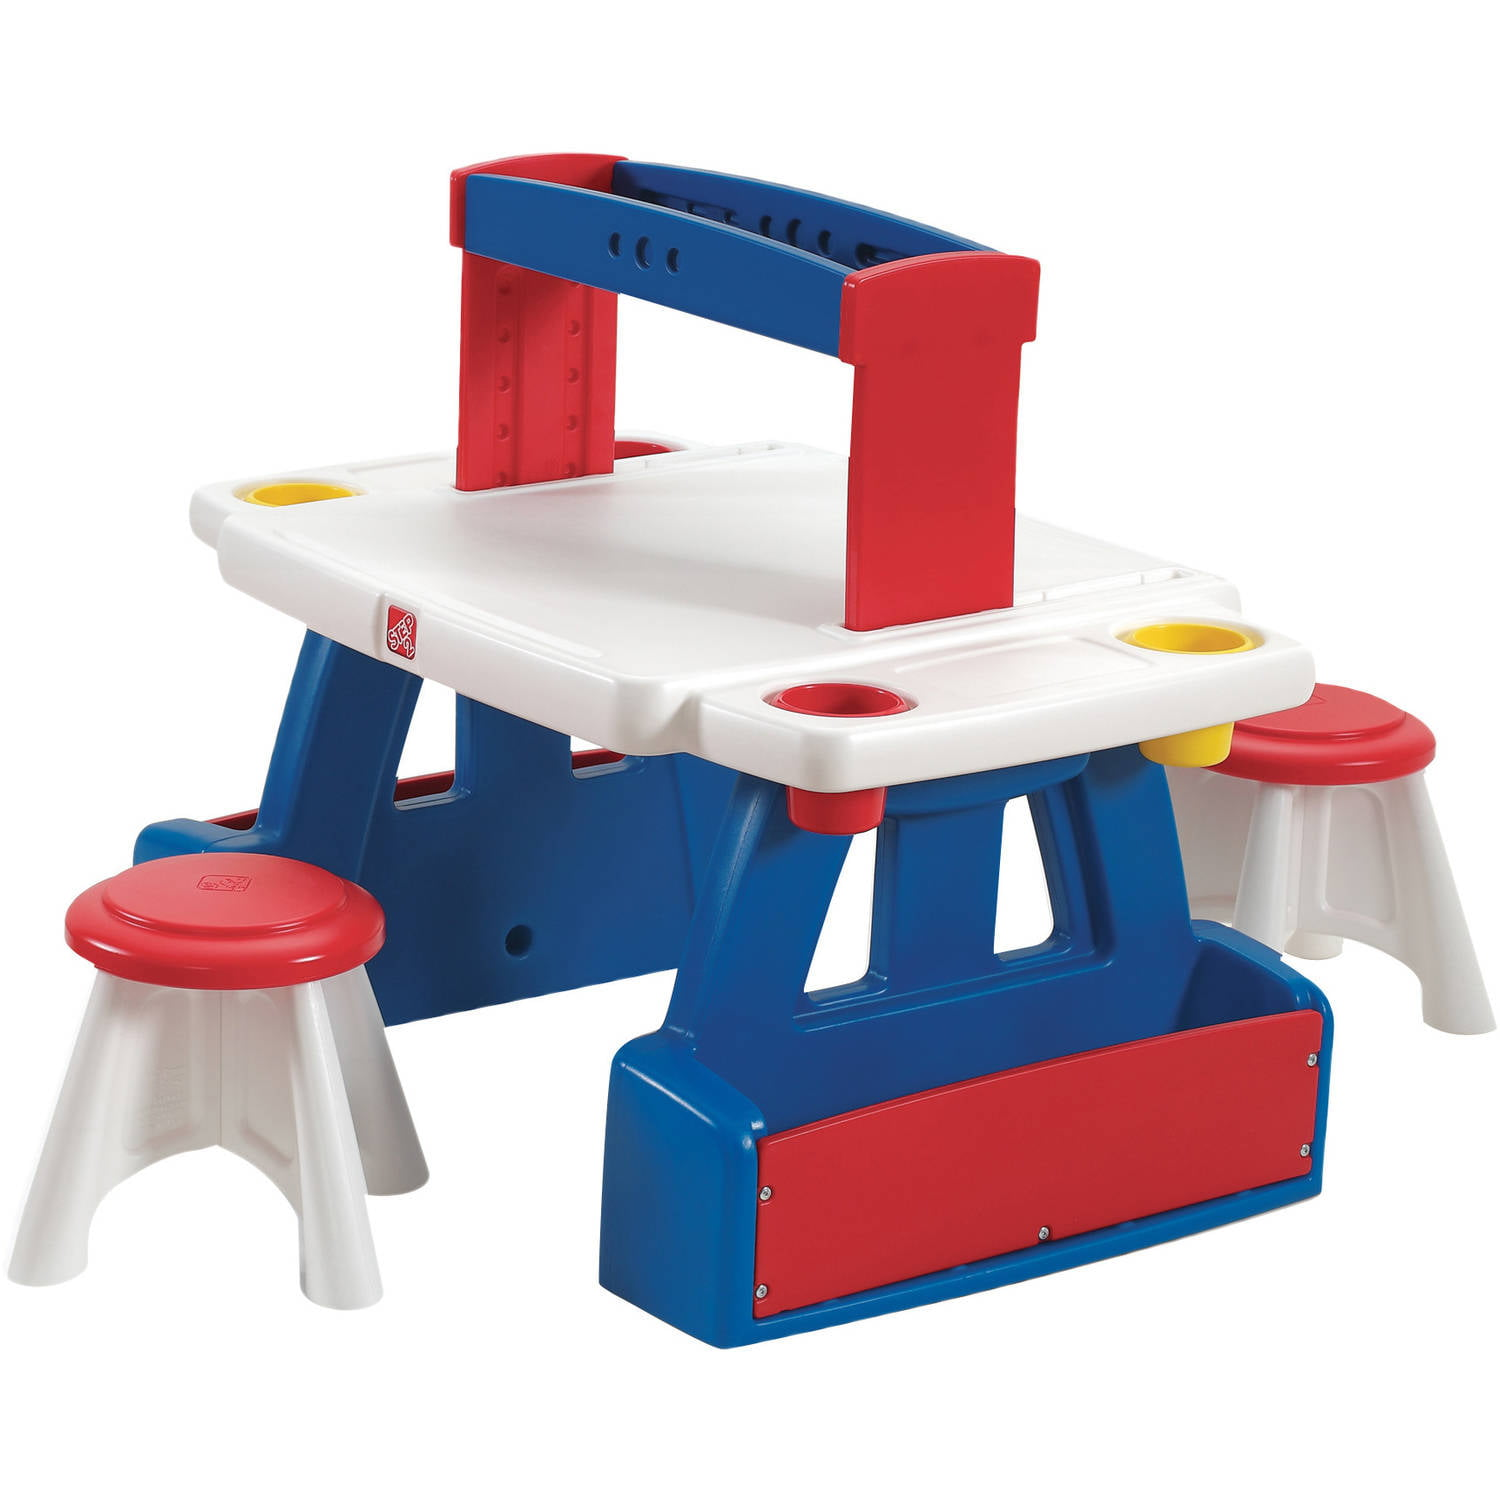 Charmant Step2 Creative Projects Kids Table And Two Stools   Walmart.com